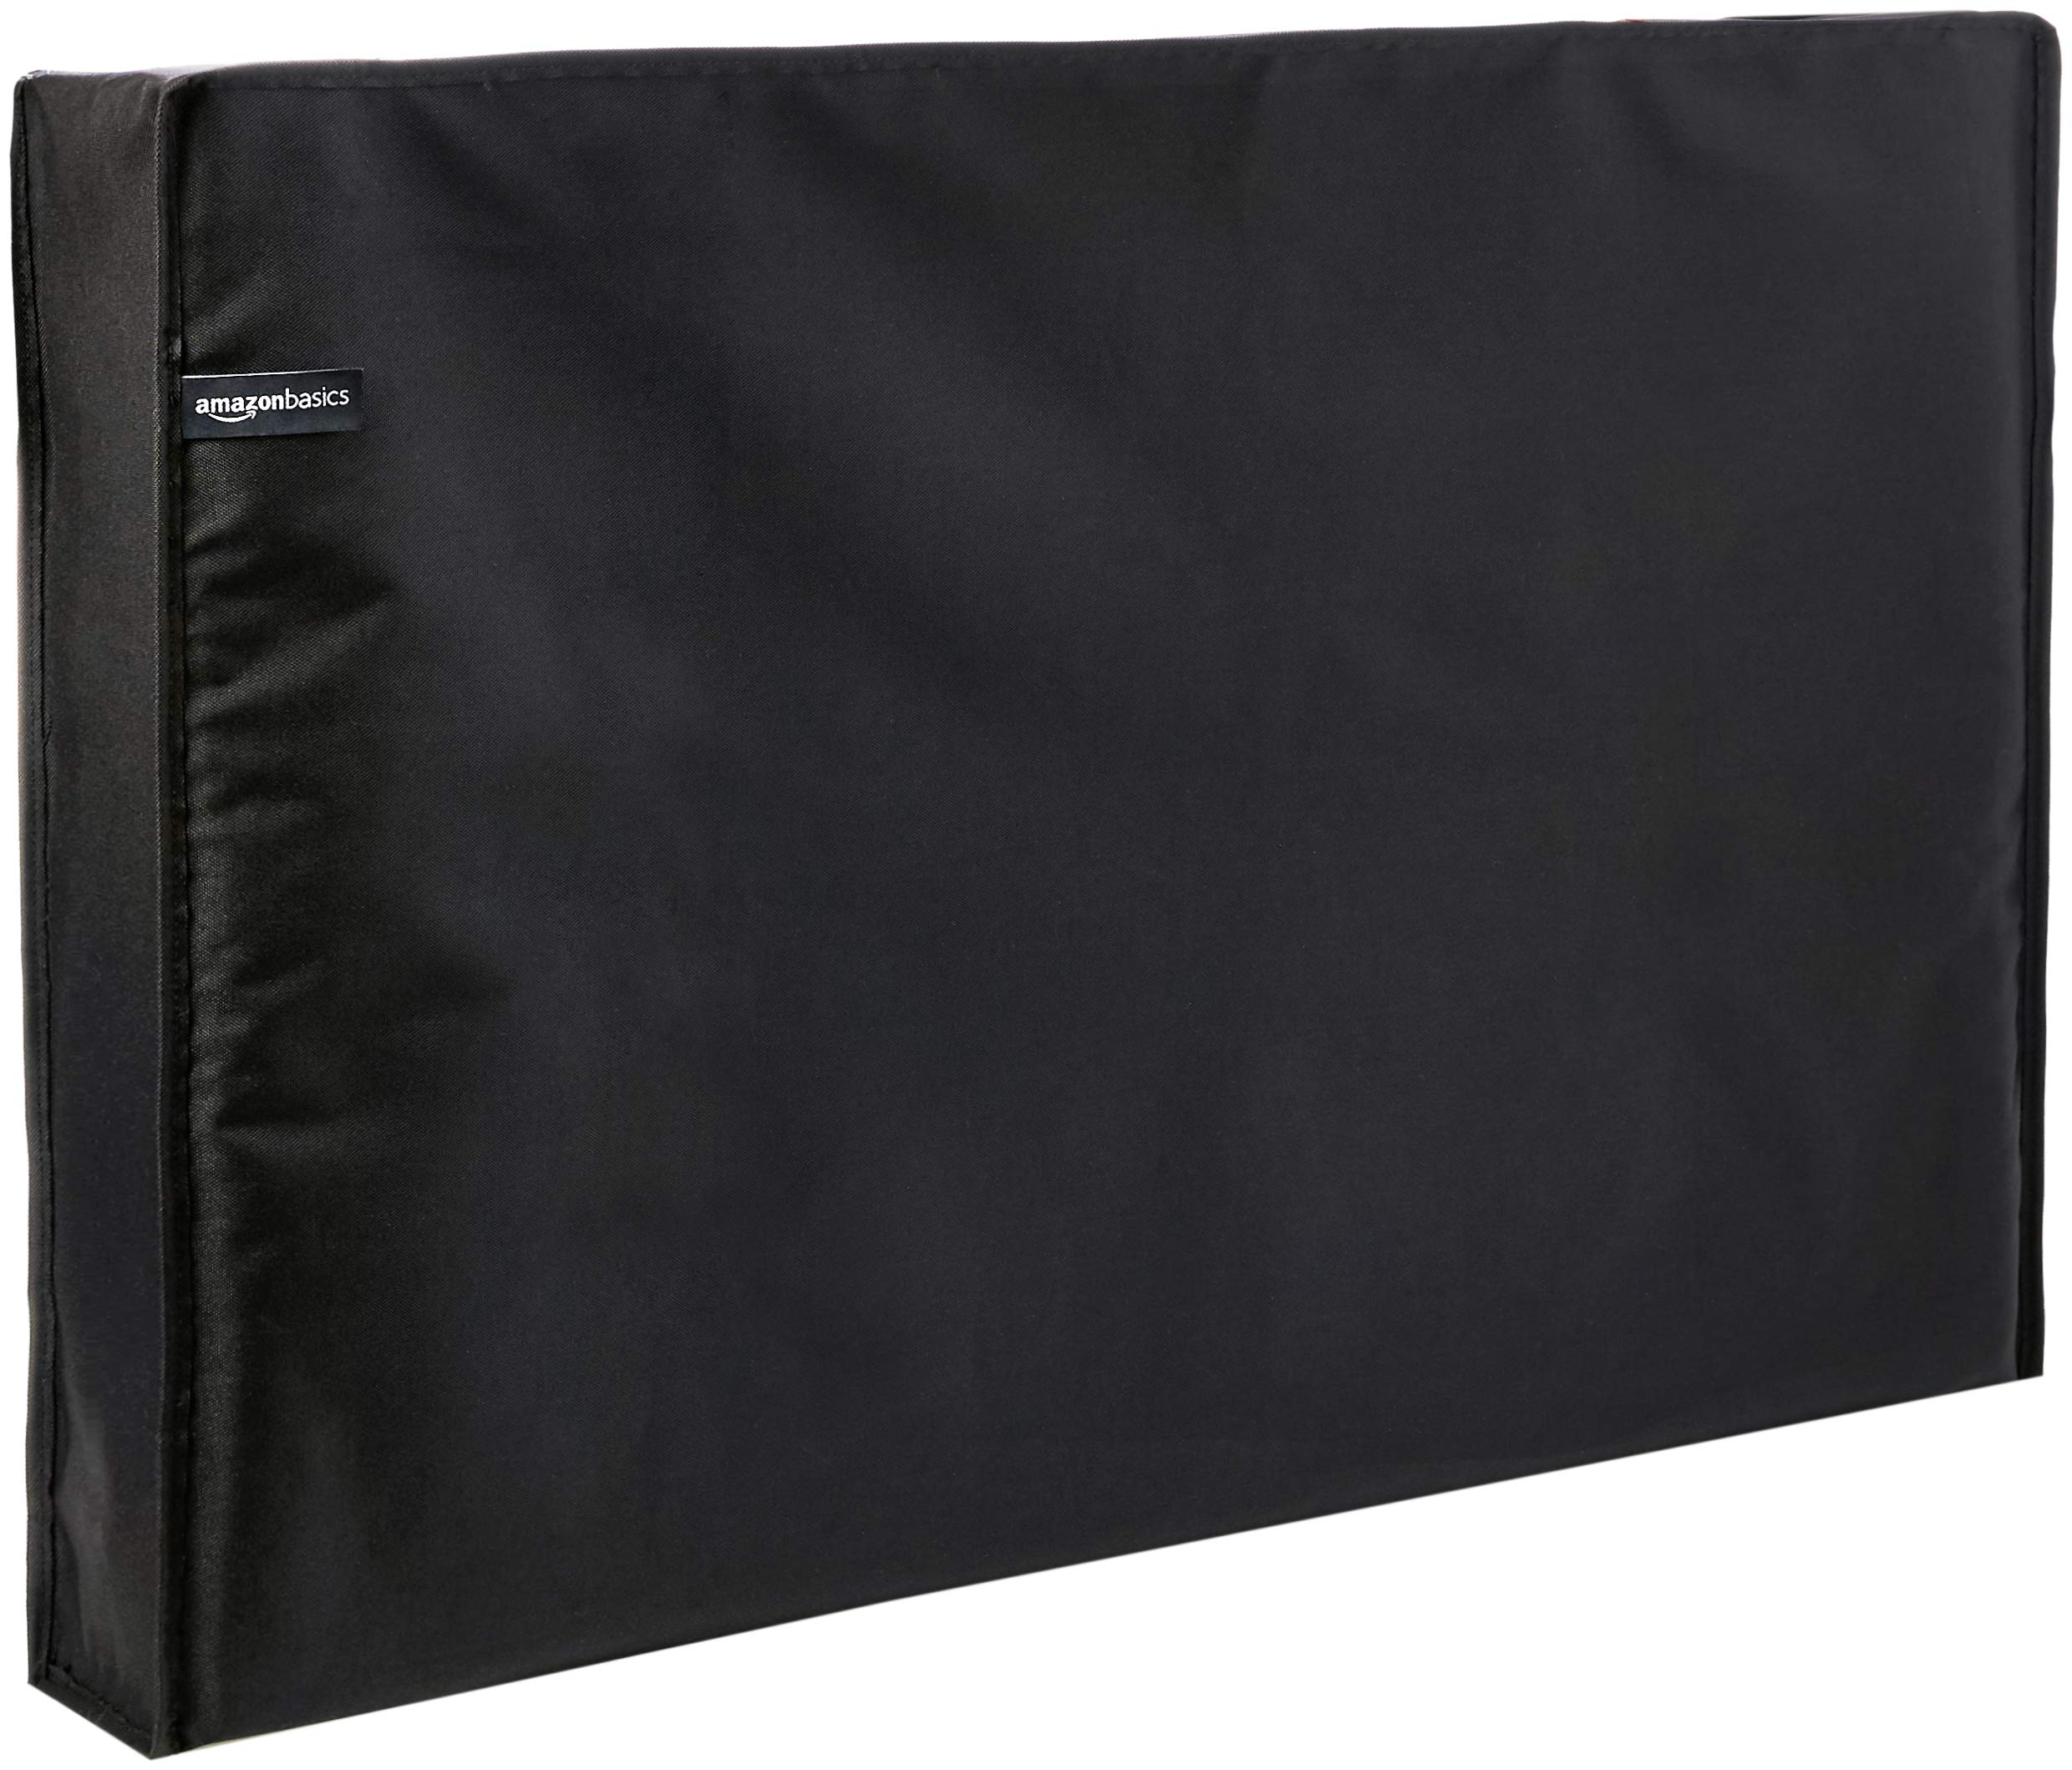 AmazonBasics Outdoor Waterproof and Weatherproof TV Cover - 60 to 65 inches by AmazonBasics